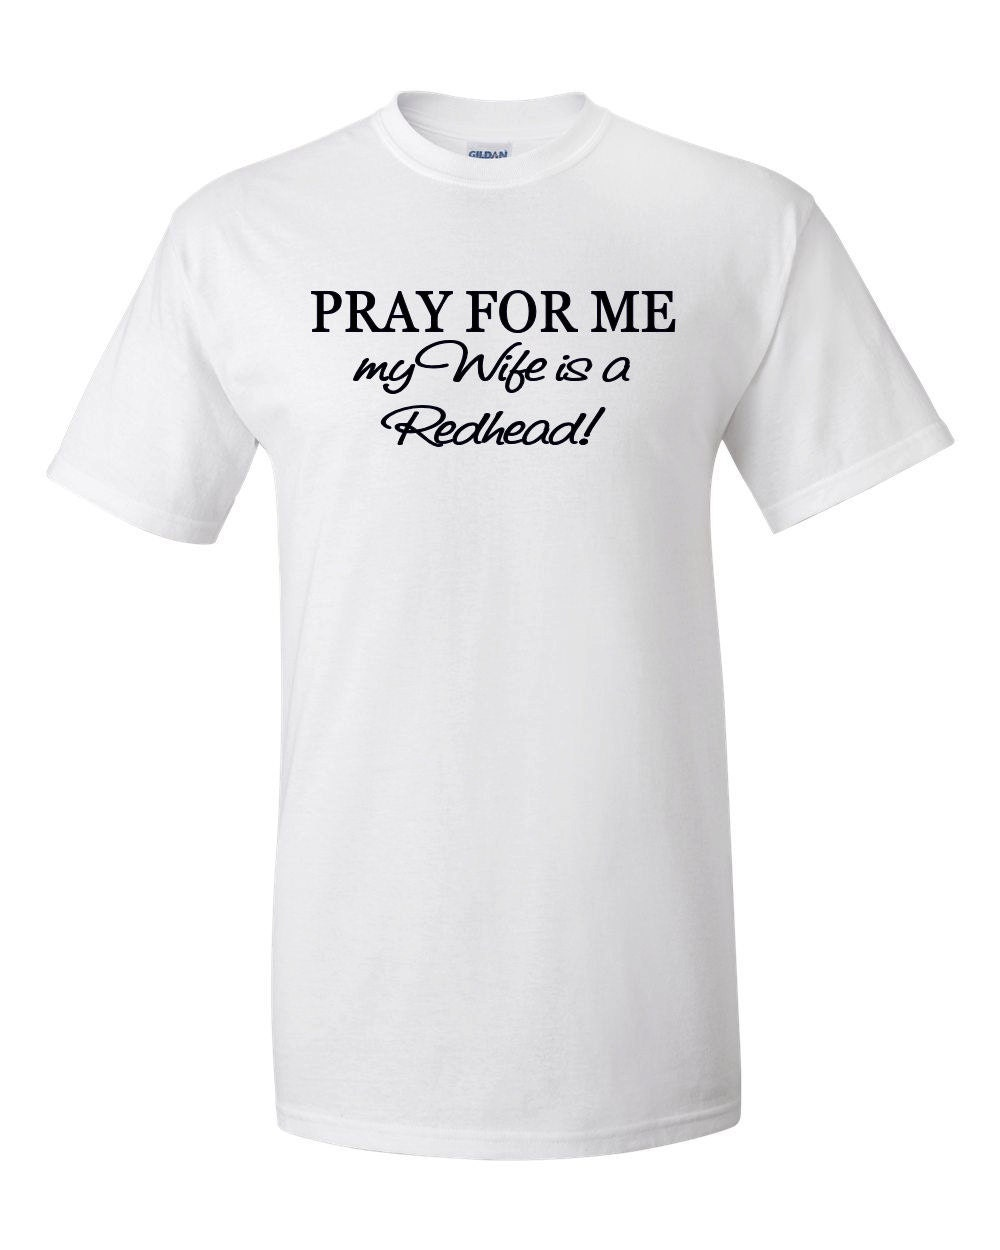 Design t shirt rollerblade - Pray For Me My Wife Is A Redhead T Shirt